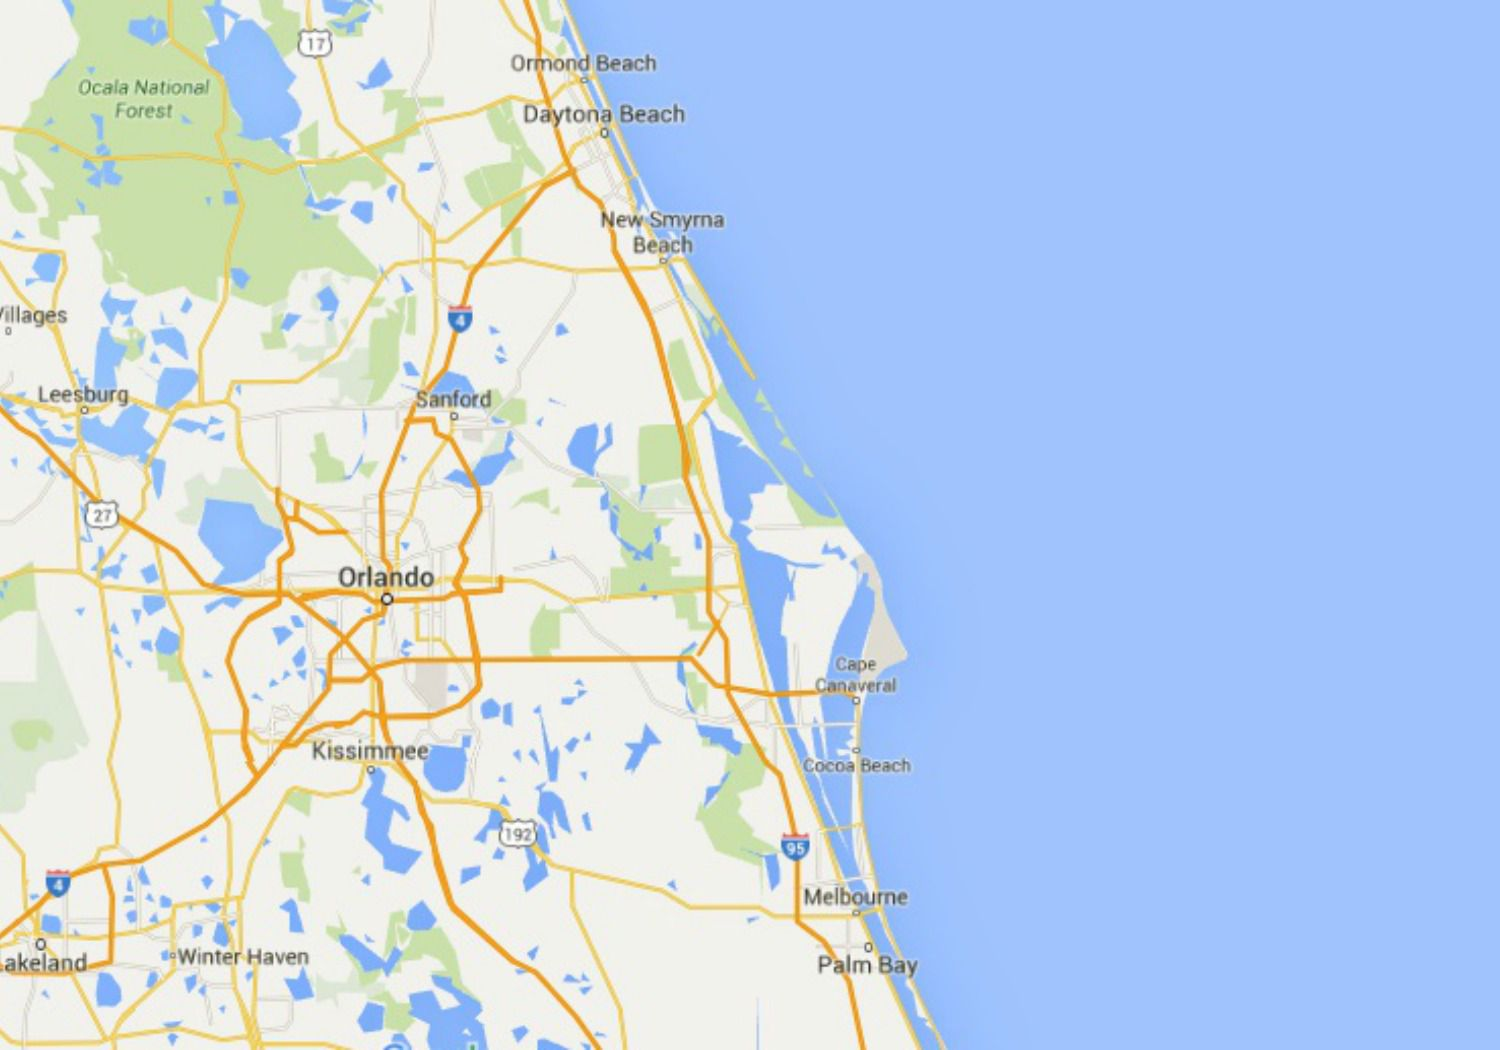 Maps of Florida Orlando Tampa Miami Keys and More